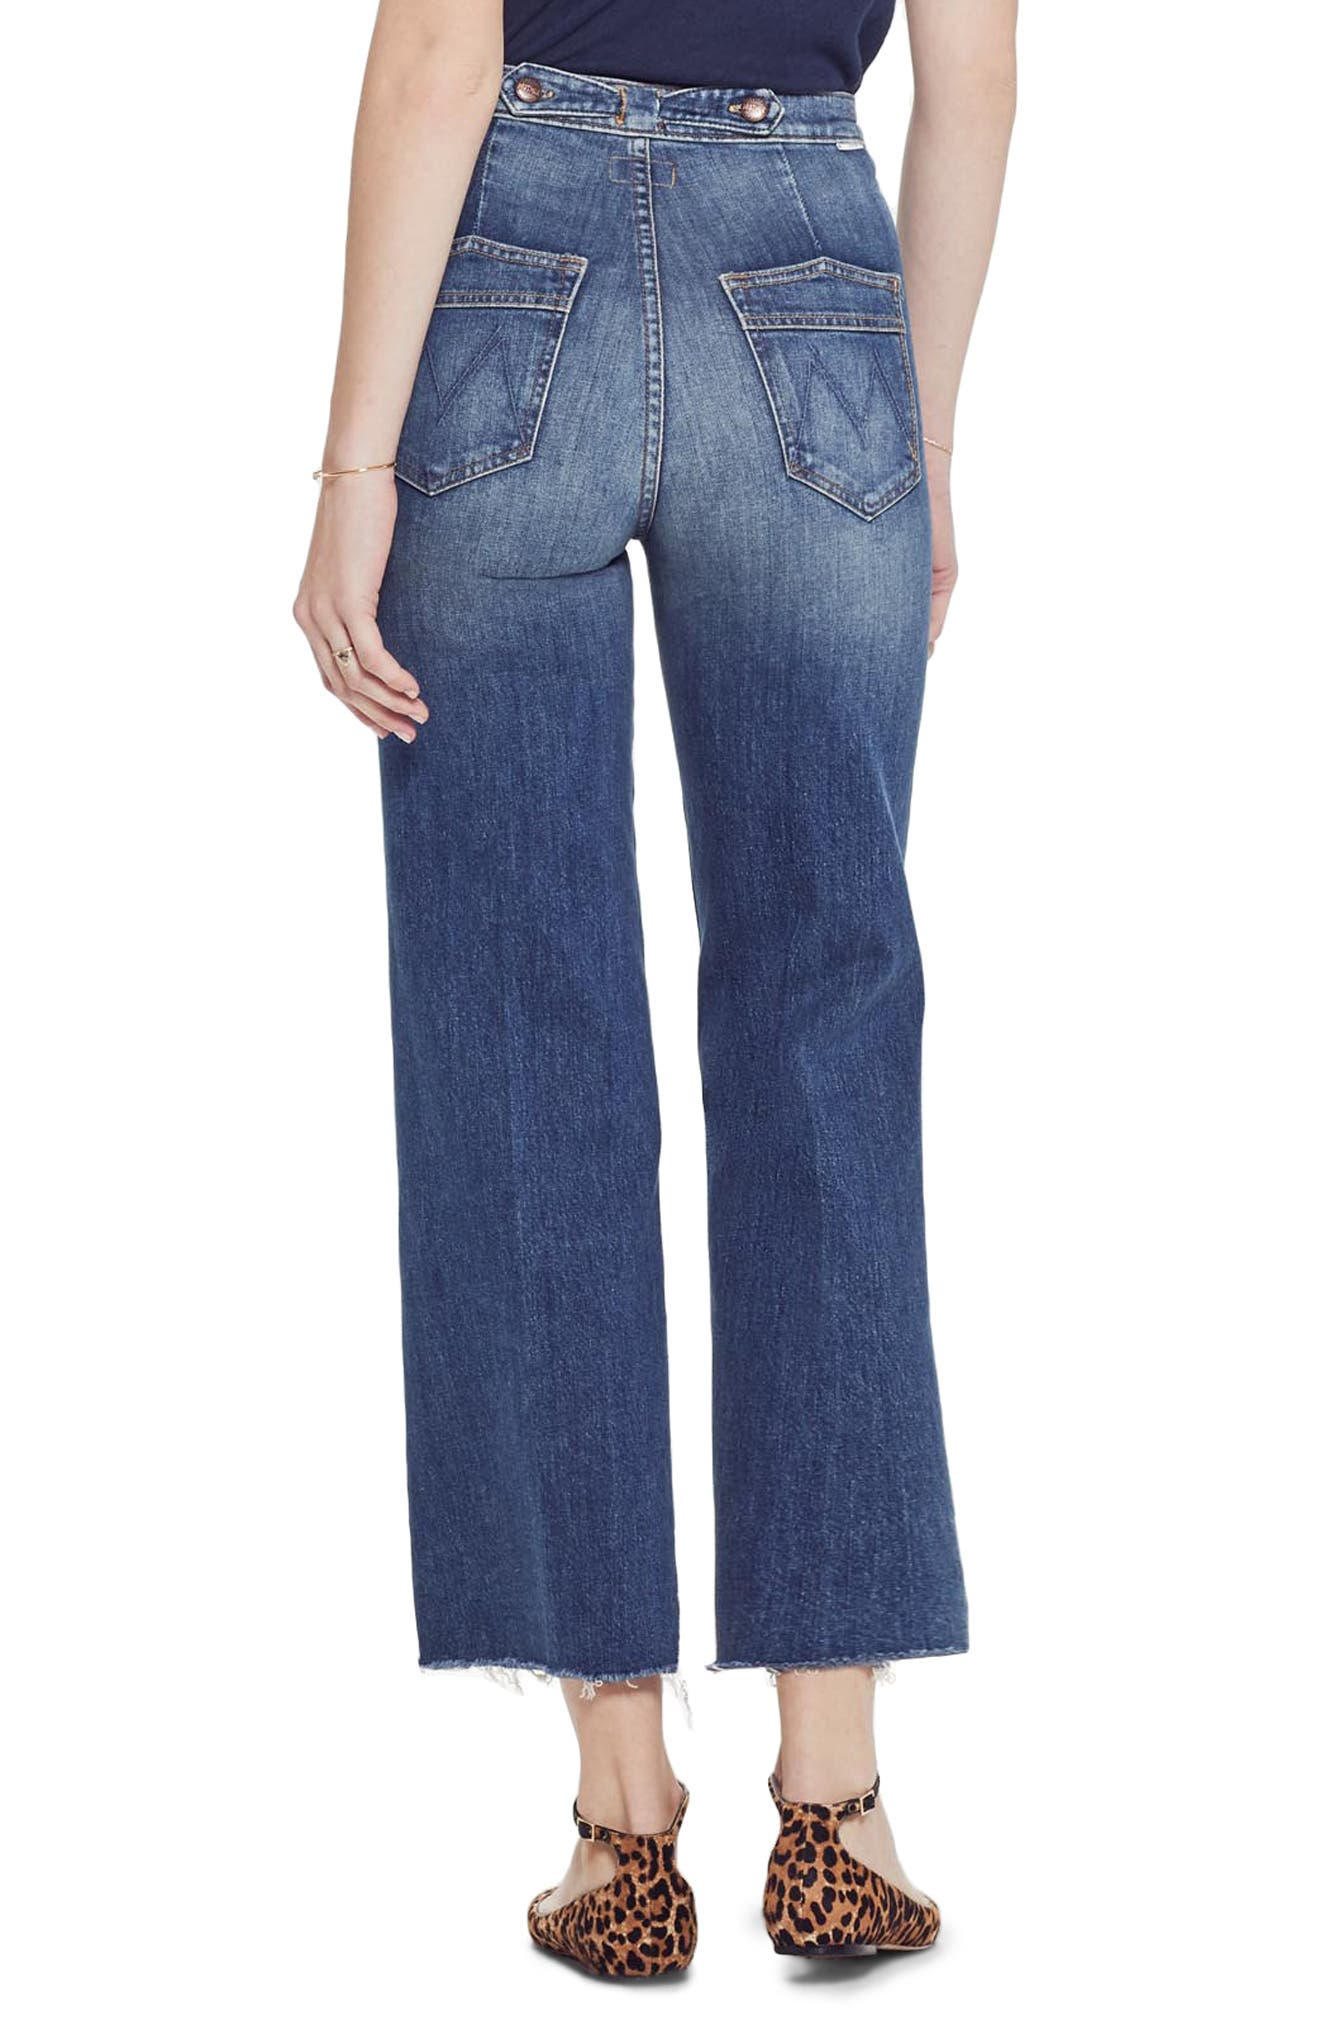 MOTHER, The Loop De Loop Frayed Wide Leg Jeans, Alternate thumbnail 2, color, JUST ONE SIP